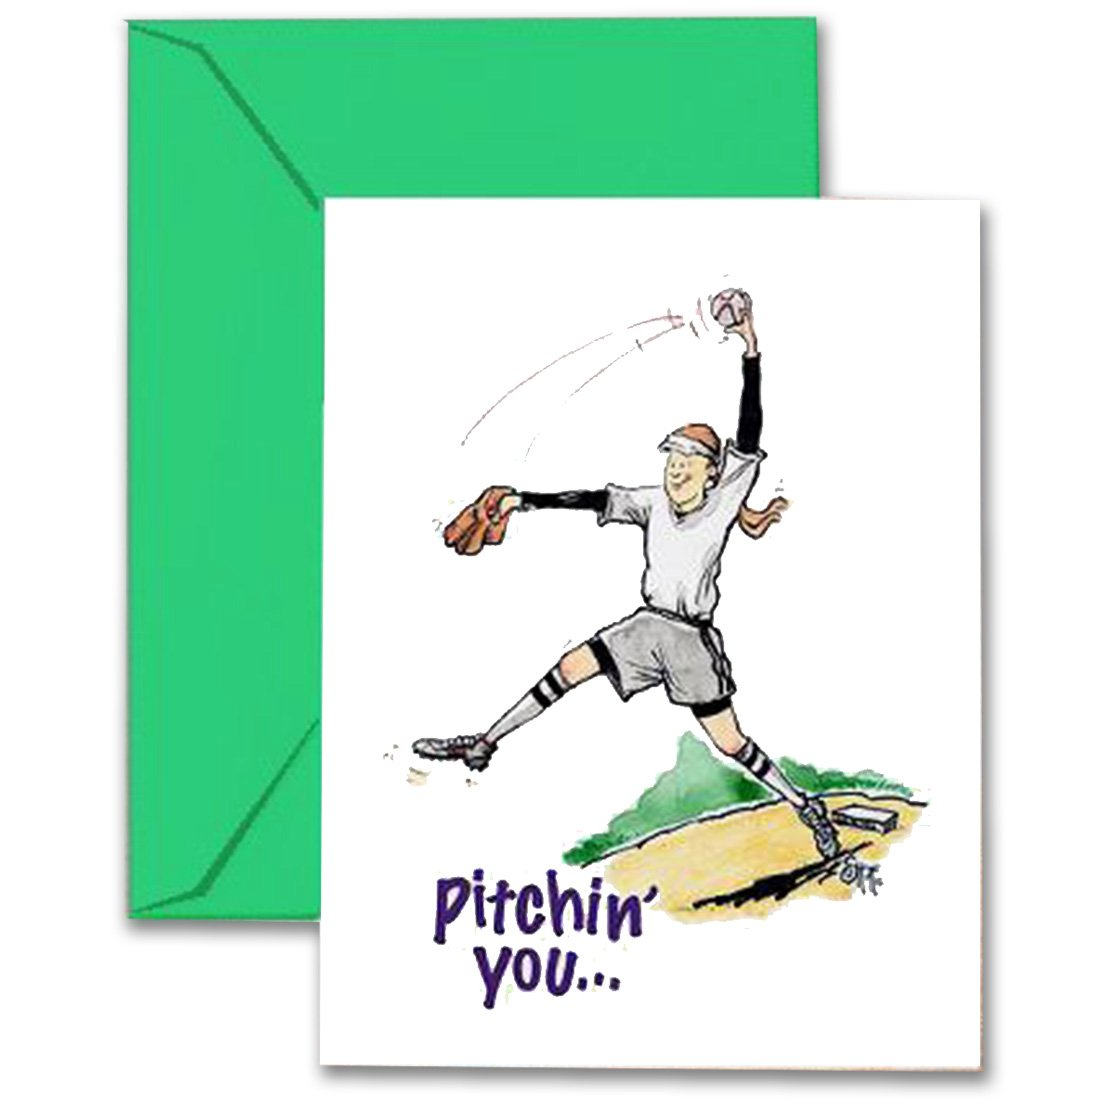 Cheap sports greeting cards find sports greeting cards deals on get quotations softball birthday card 5x7 play strong sports birthday greeting cards awesome for players m4hsunfo